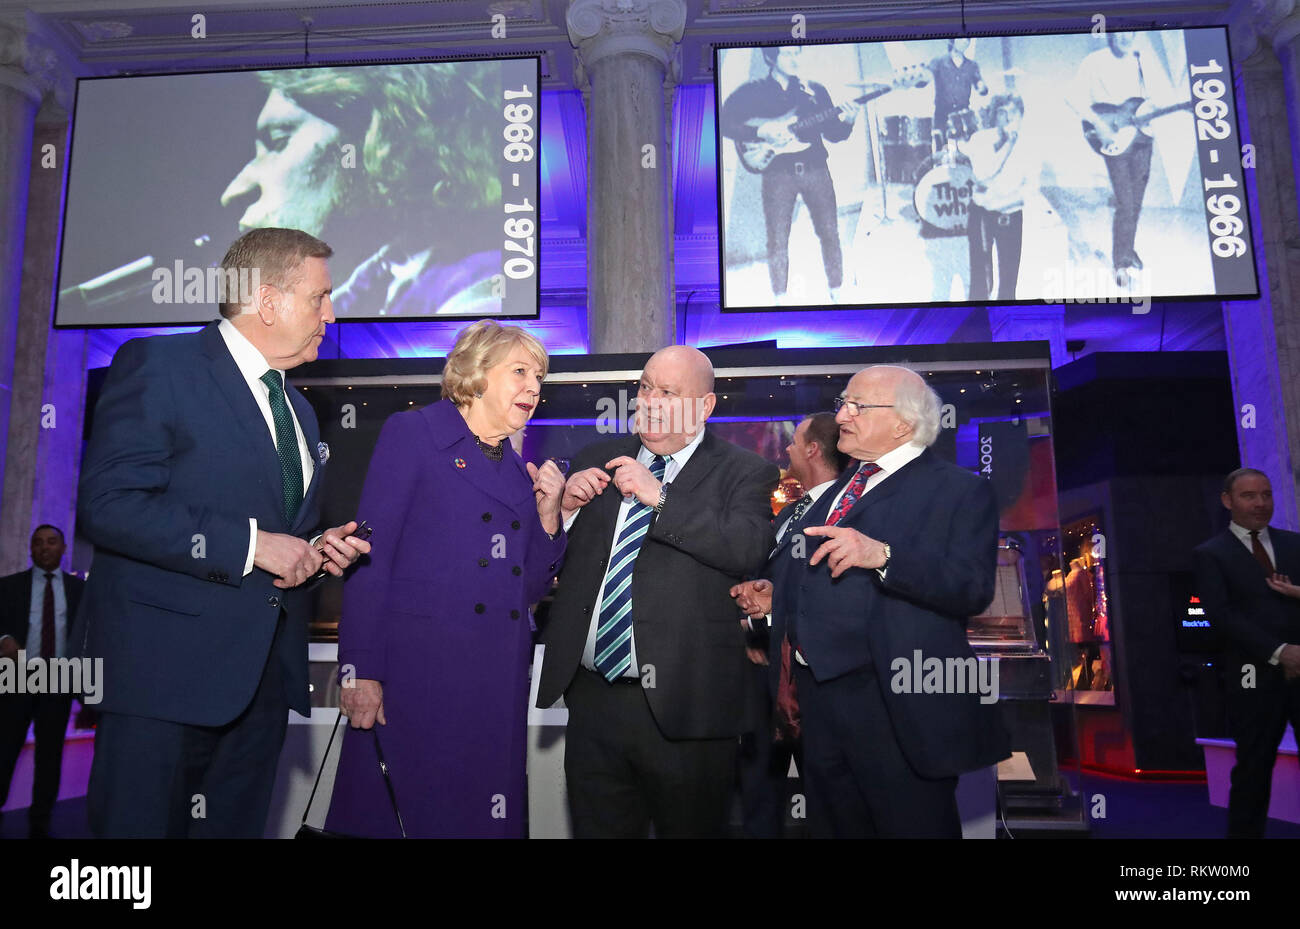 Irish President Michael D Higgins and Sabina Coyne with Mayor of Liverpool, Joe Anderson (2nd right) and minister Pat Breen (left) at the British Music Experience in Liverpool on the second day of an official visit to the UK. - Stock Image